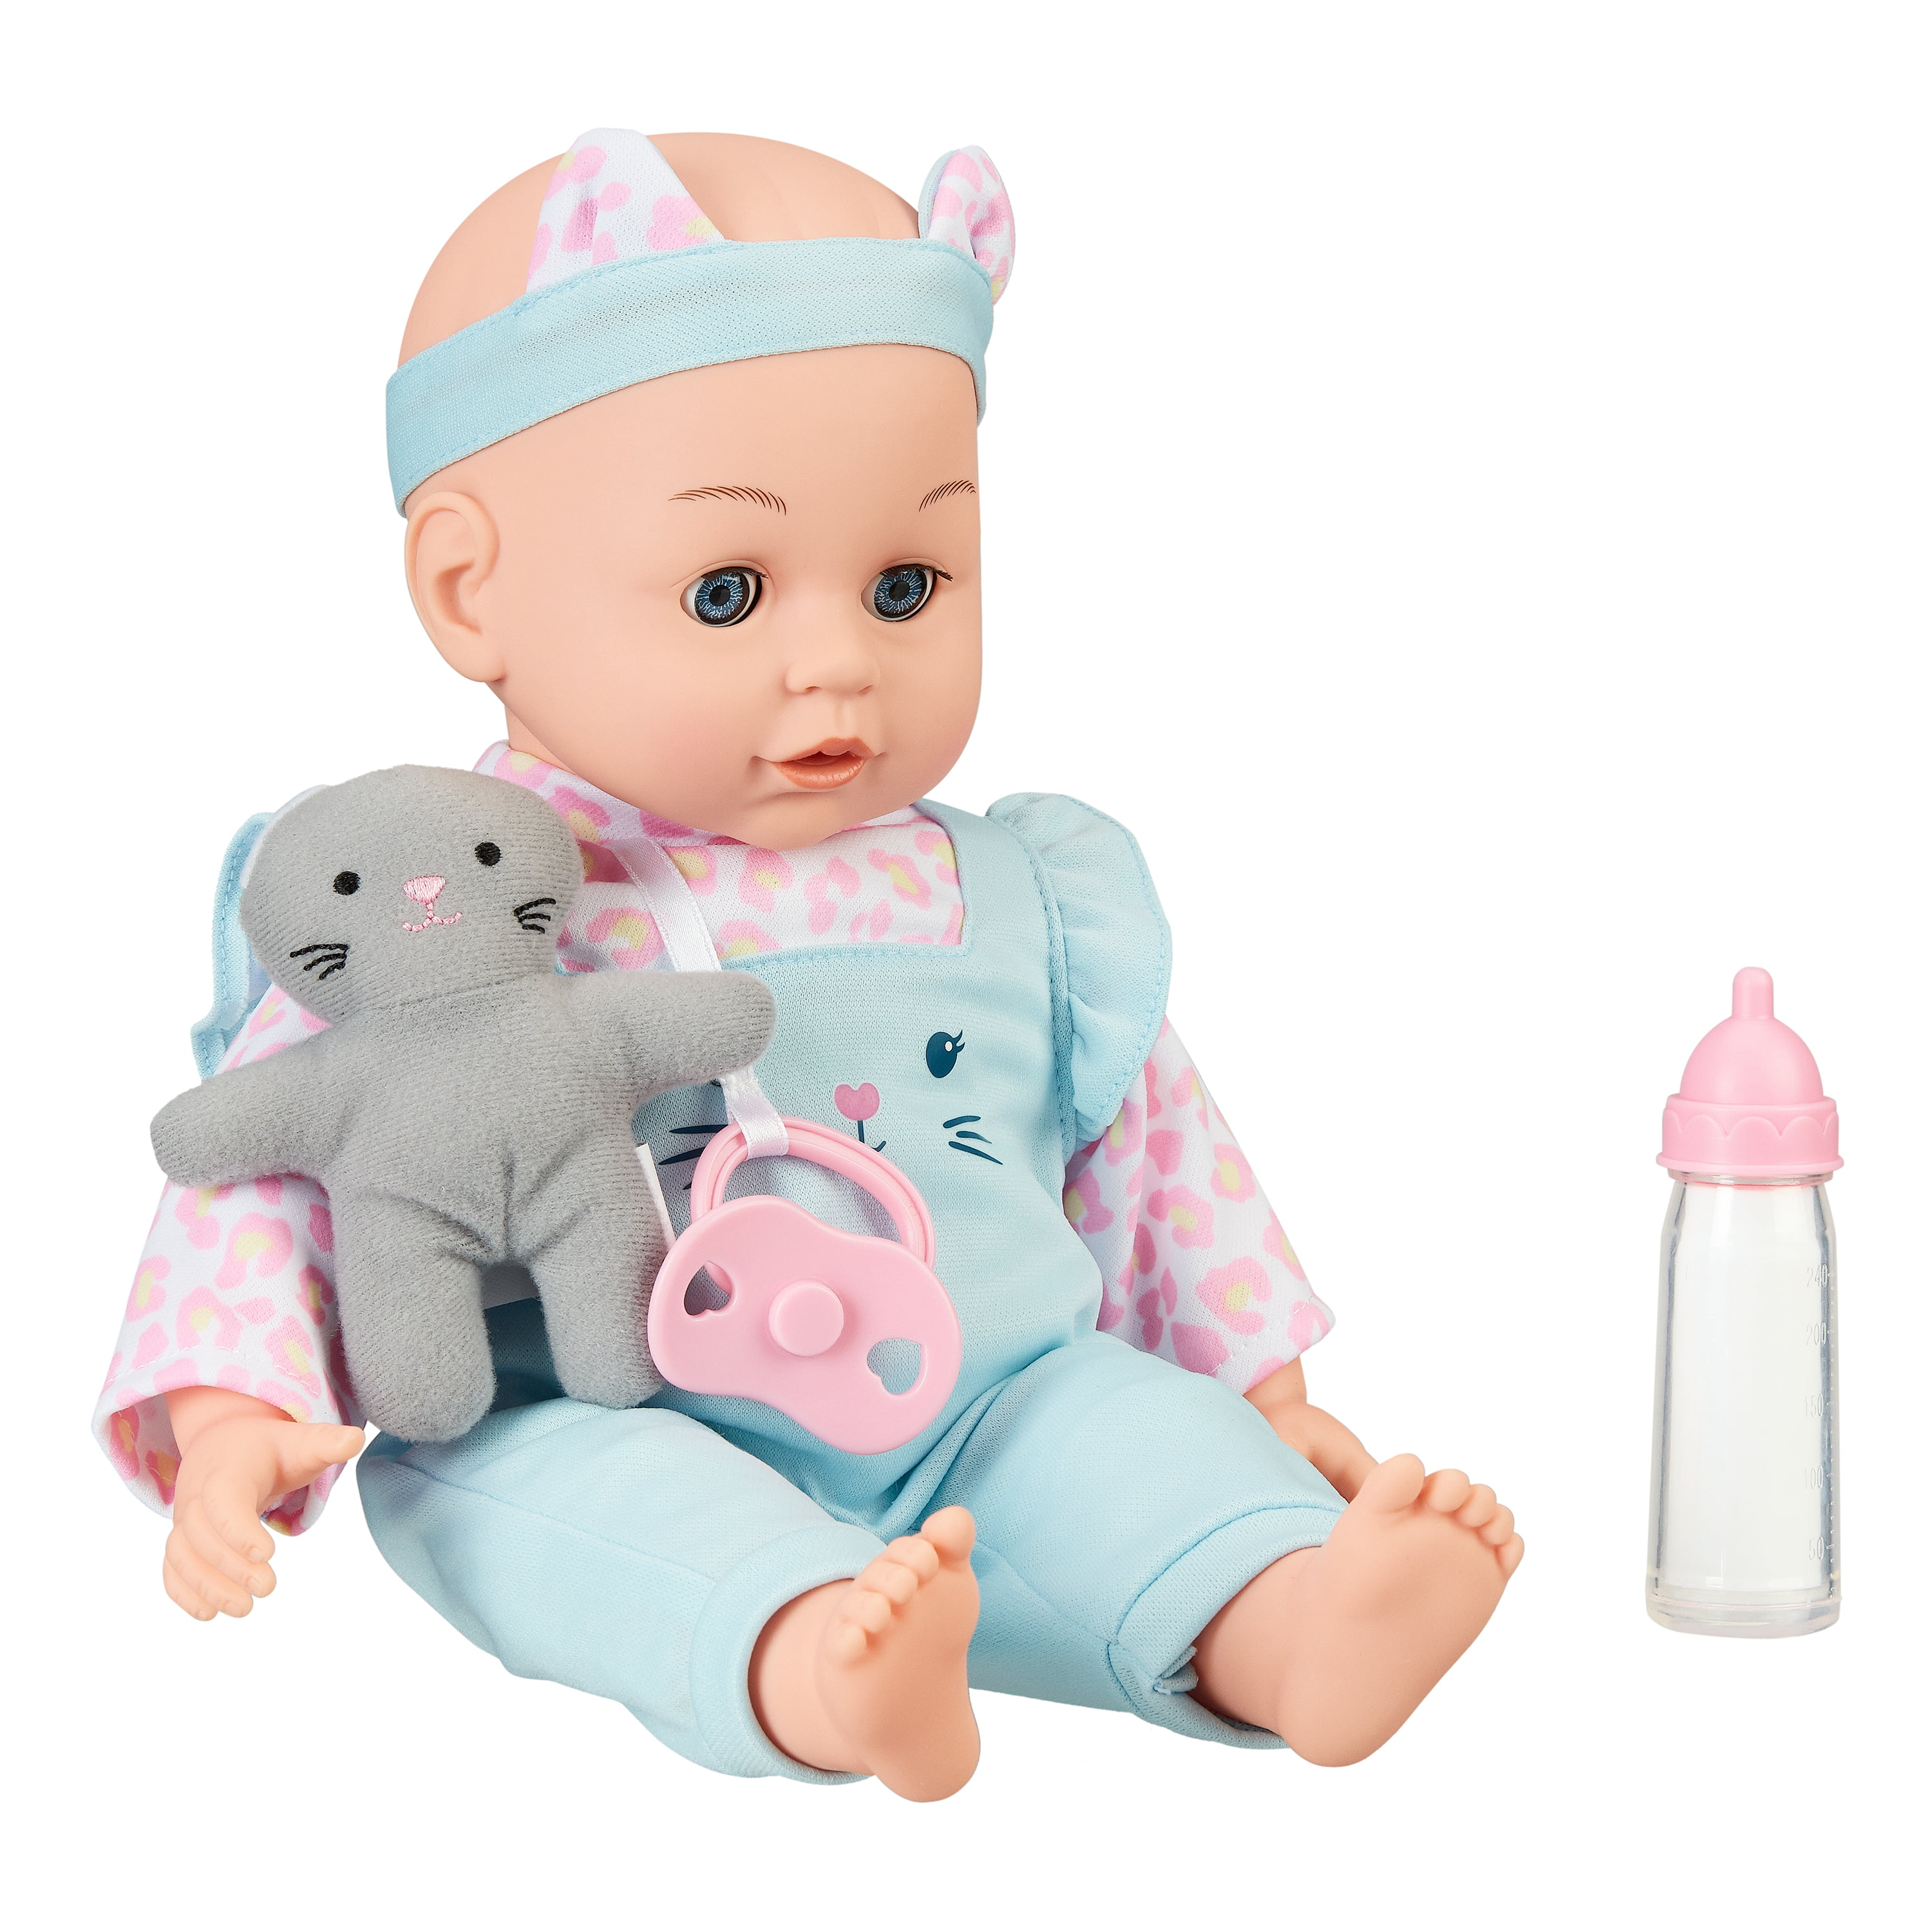 My Sweet Love Sweet Baby Doll Toy Set 4 Pieces